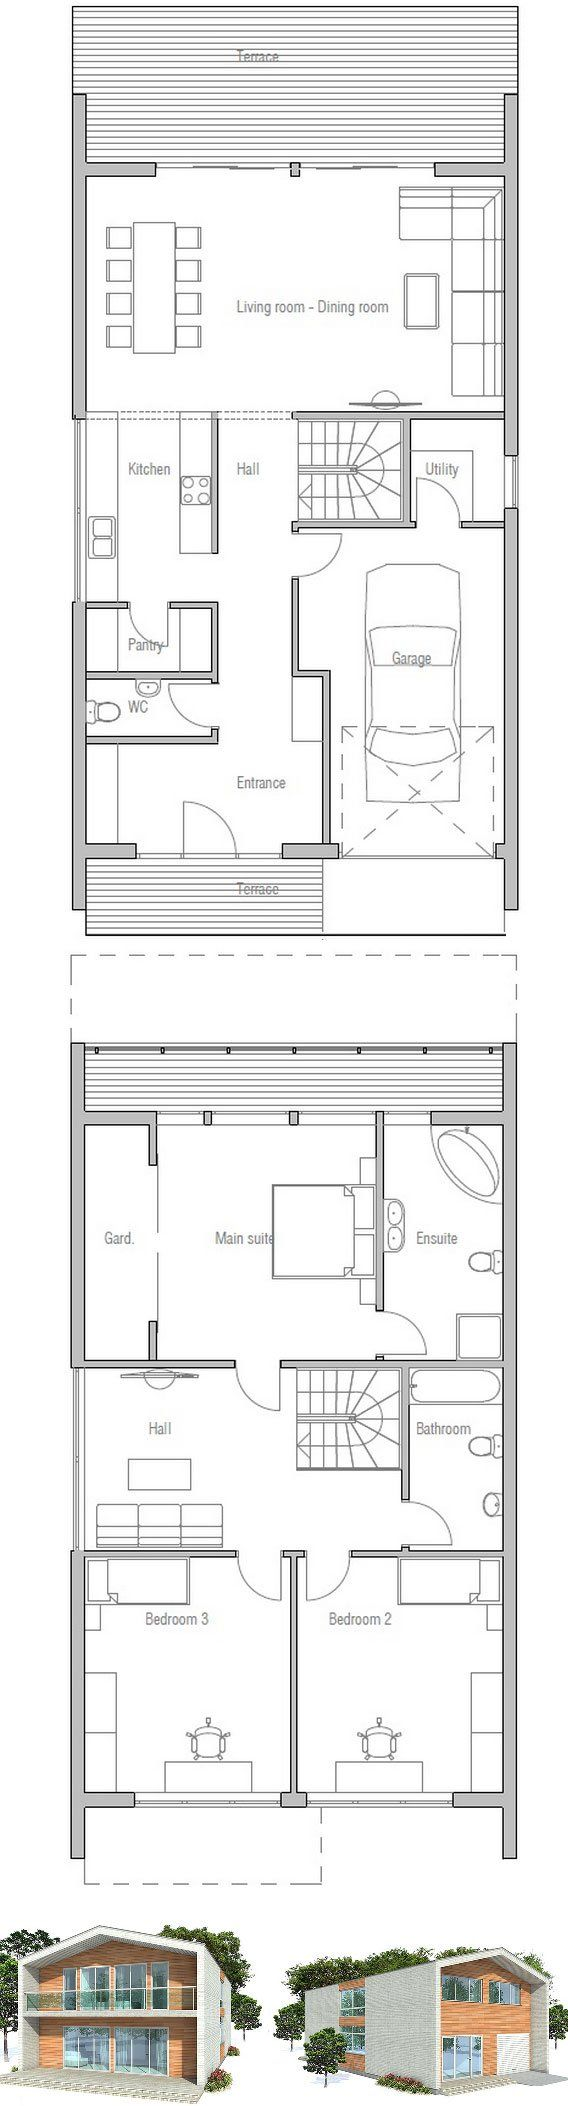 Narrow House in Modern Contemporary Architecture. Floor Plans from ConceptHome.com